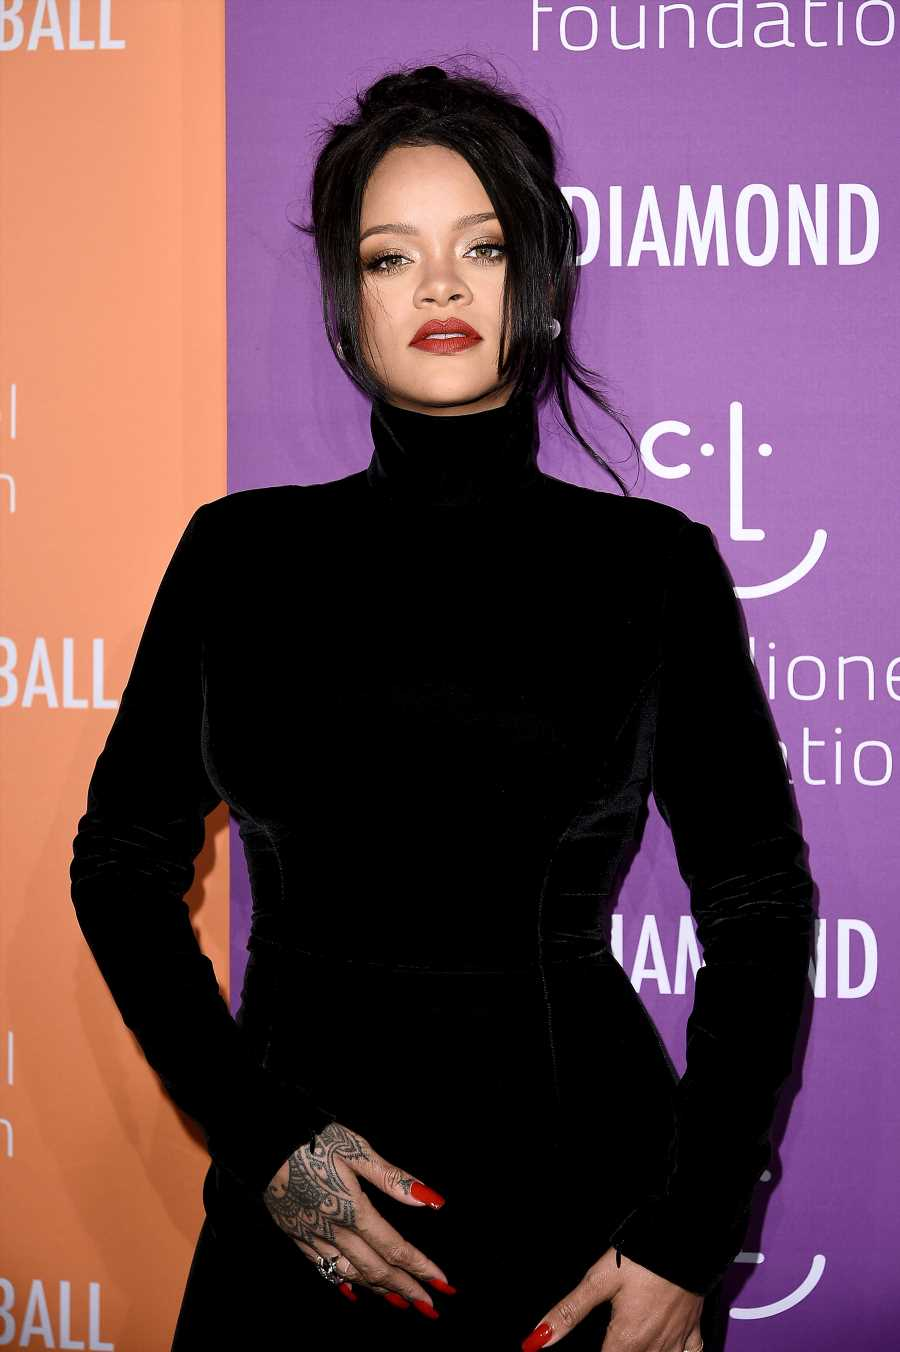 Rihanna Mourns the Death of Her Uncle Rudy with Photo Featuring Dad Ronald Fenty